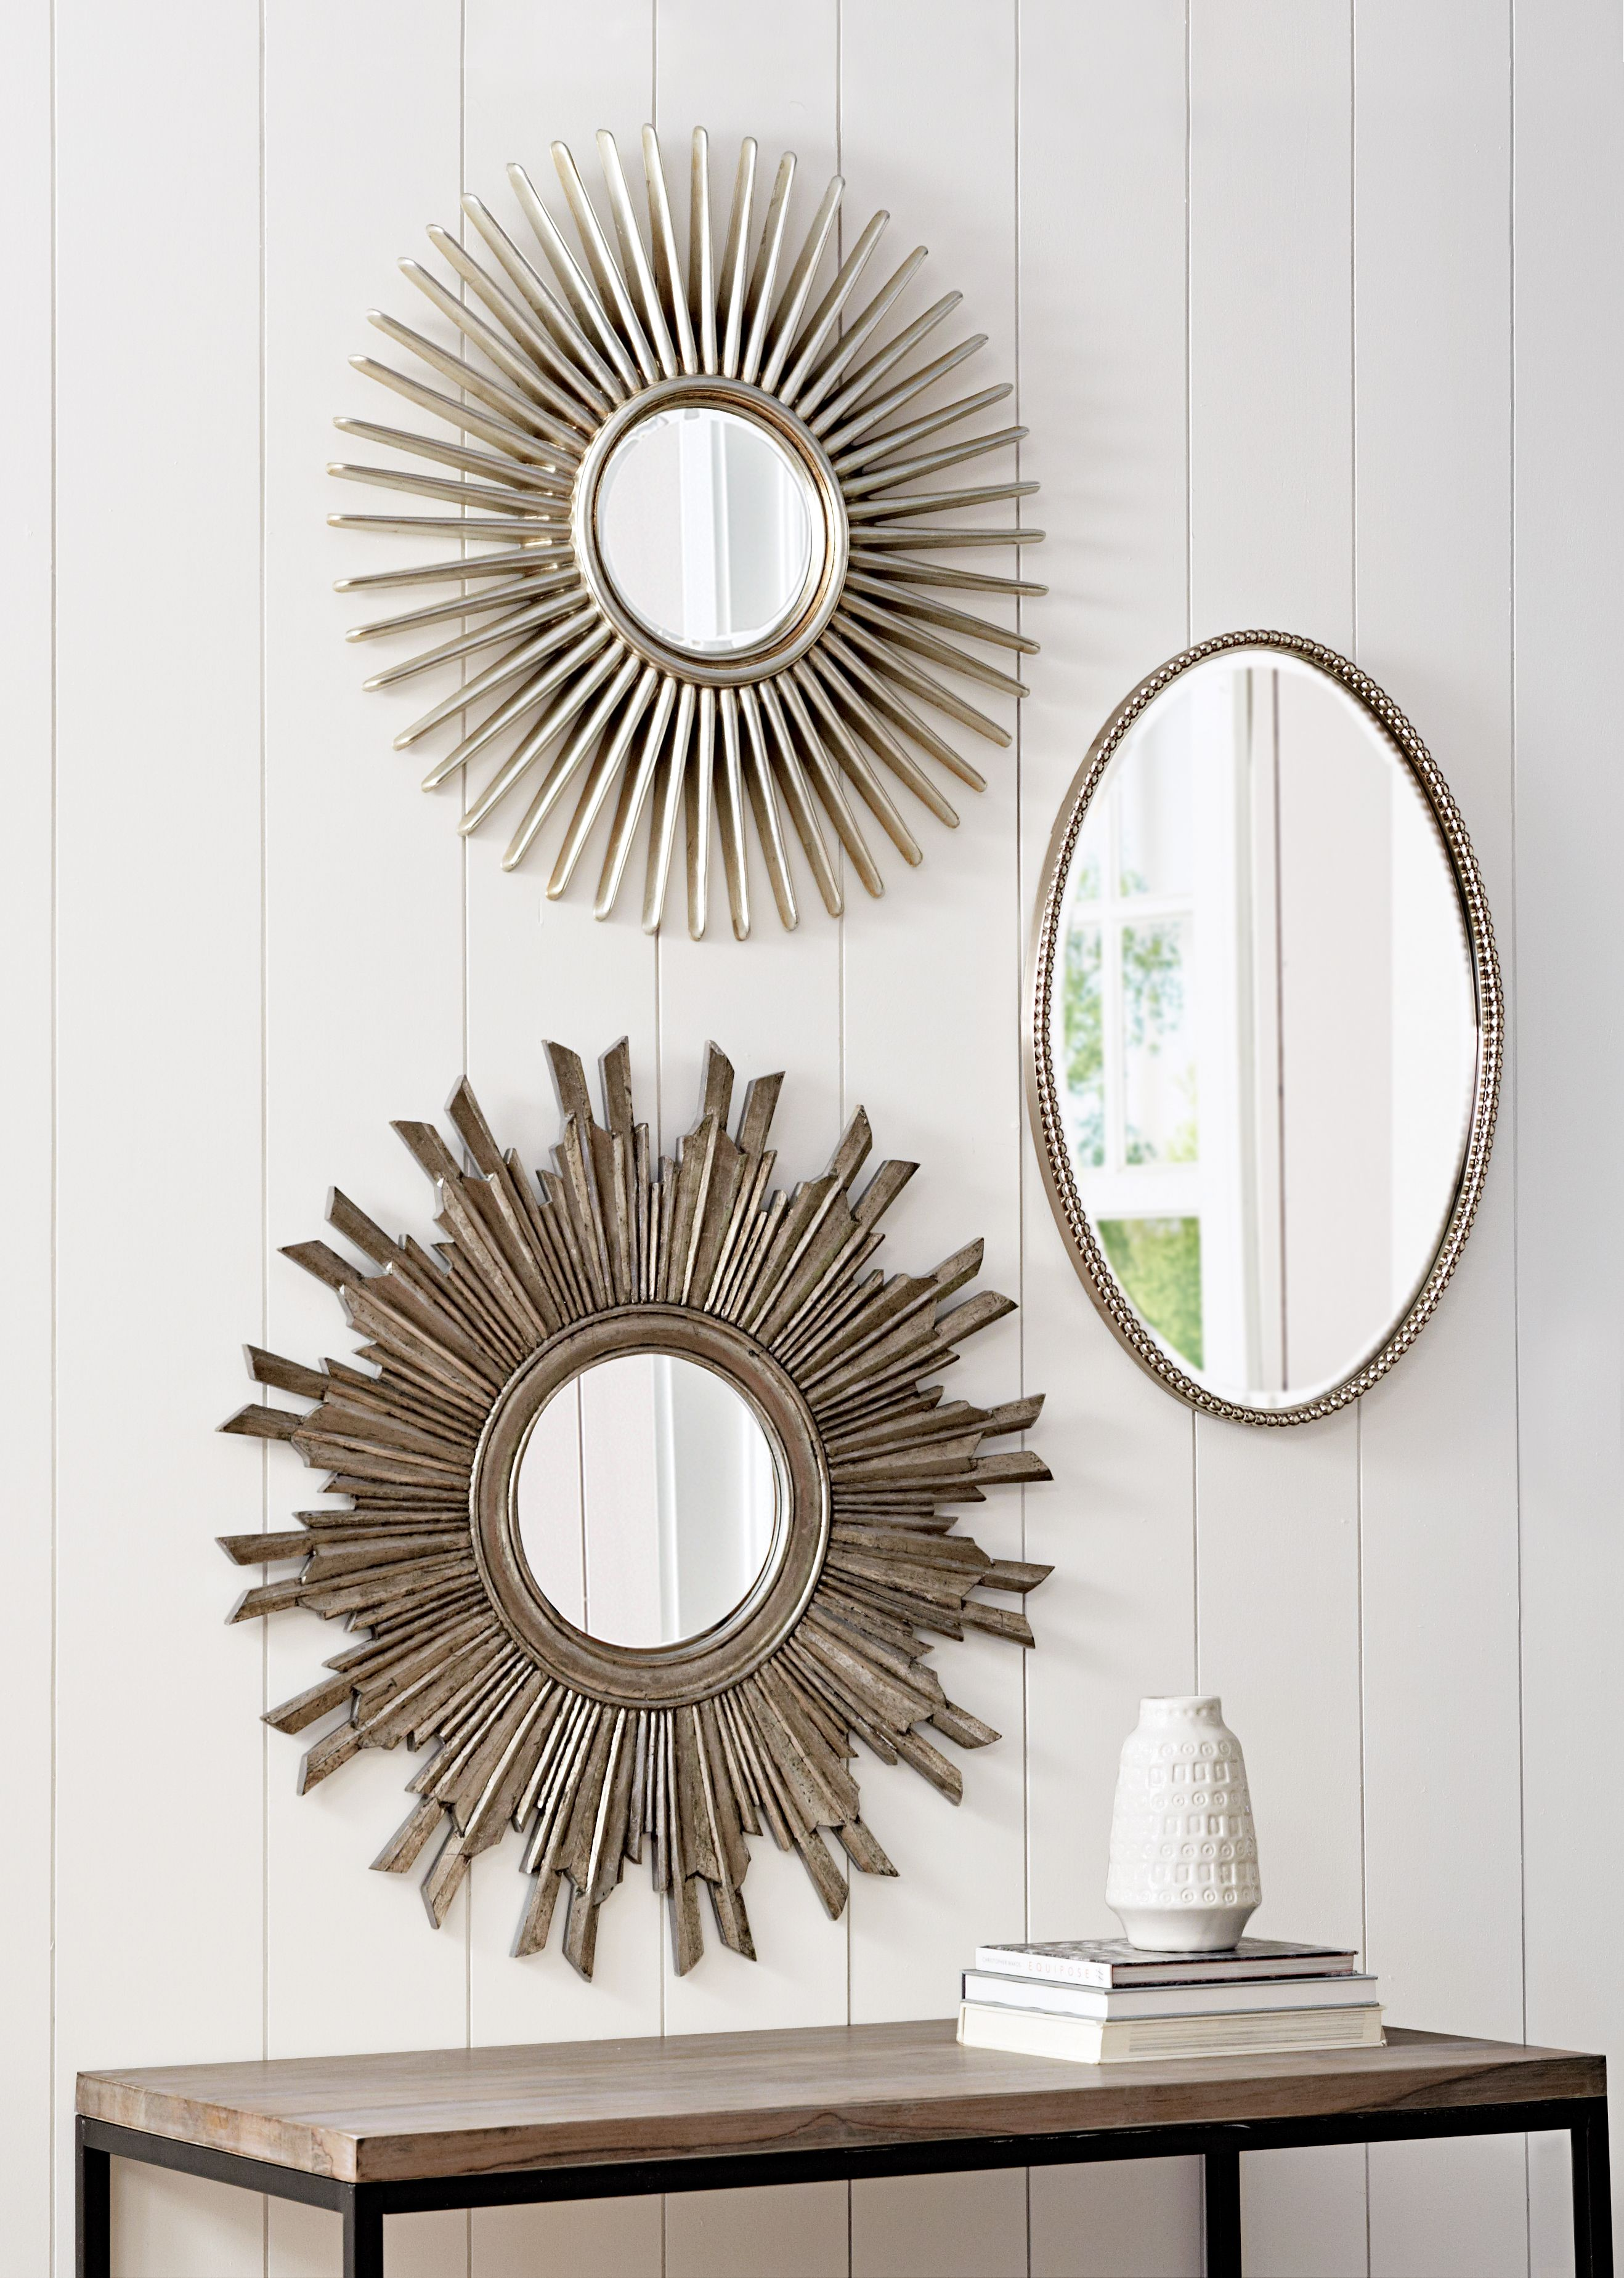 Wall Mirrors And Decorative Framed Mirrors Decorating Mirror Frames Diy Wall Decor For Bedroom Inexpensive Home Decor